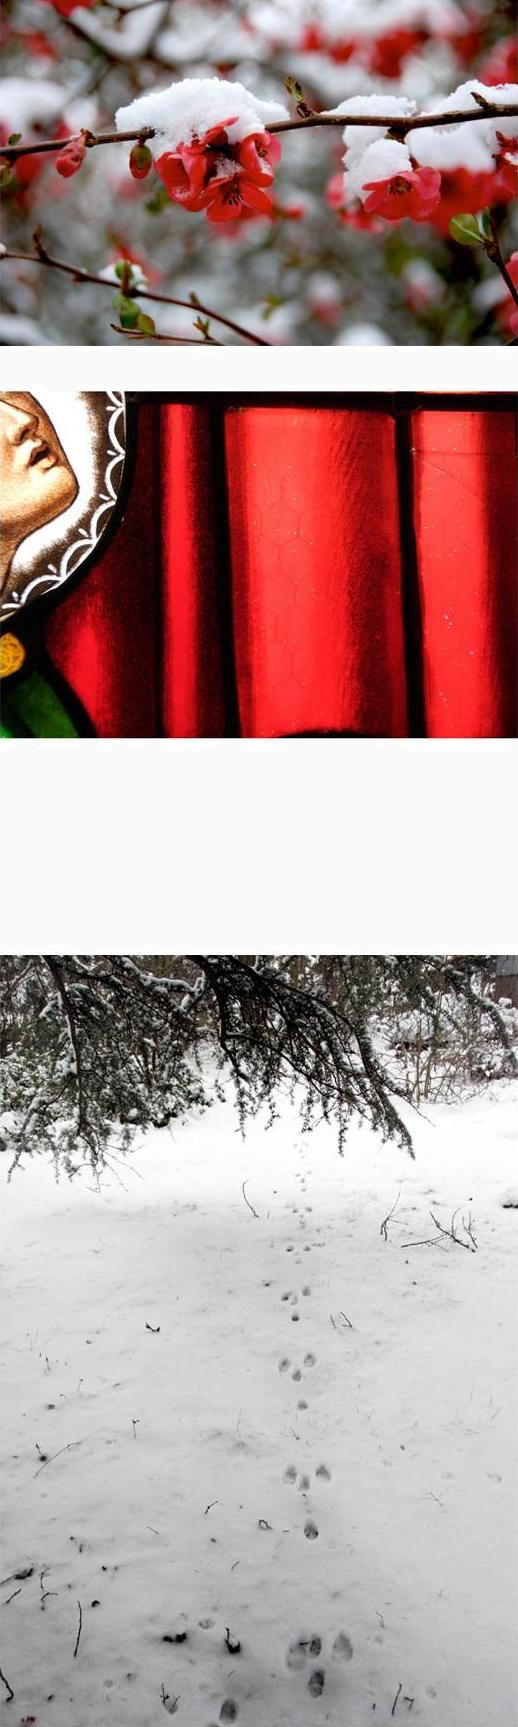 pastorale, snow on flower, stained glass, squirrel tracks in the snow, red accents